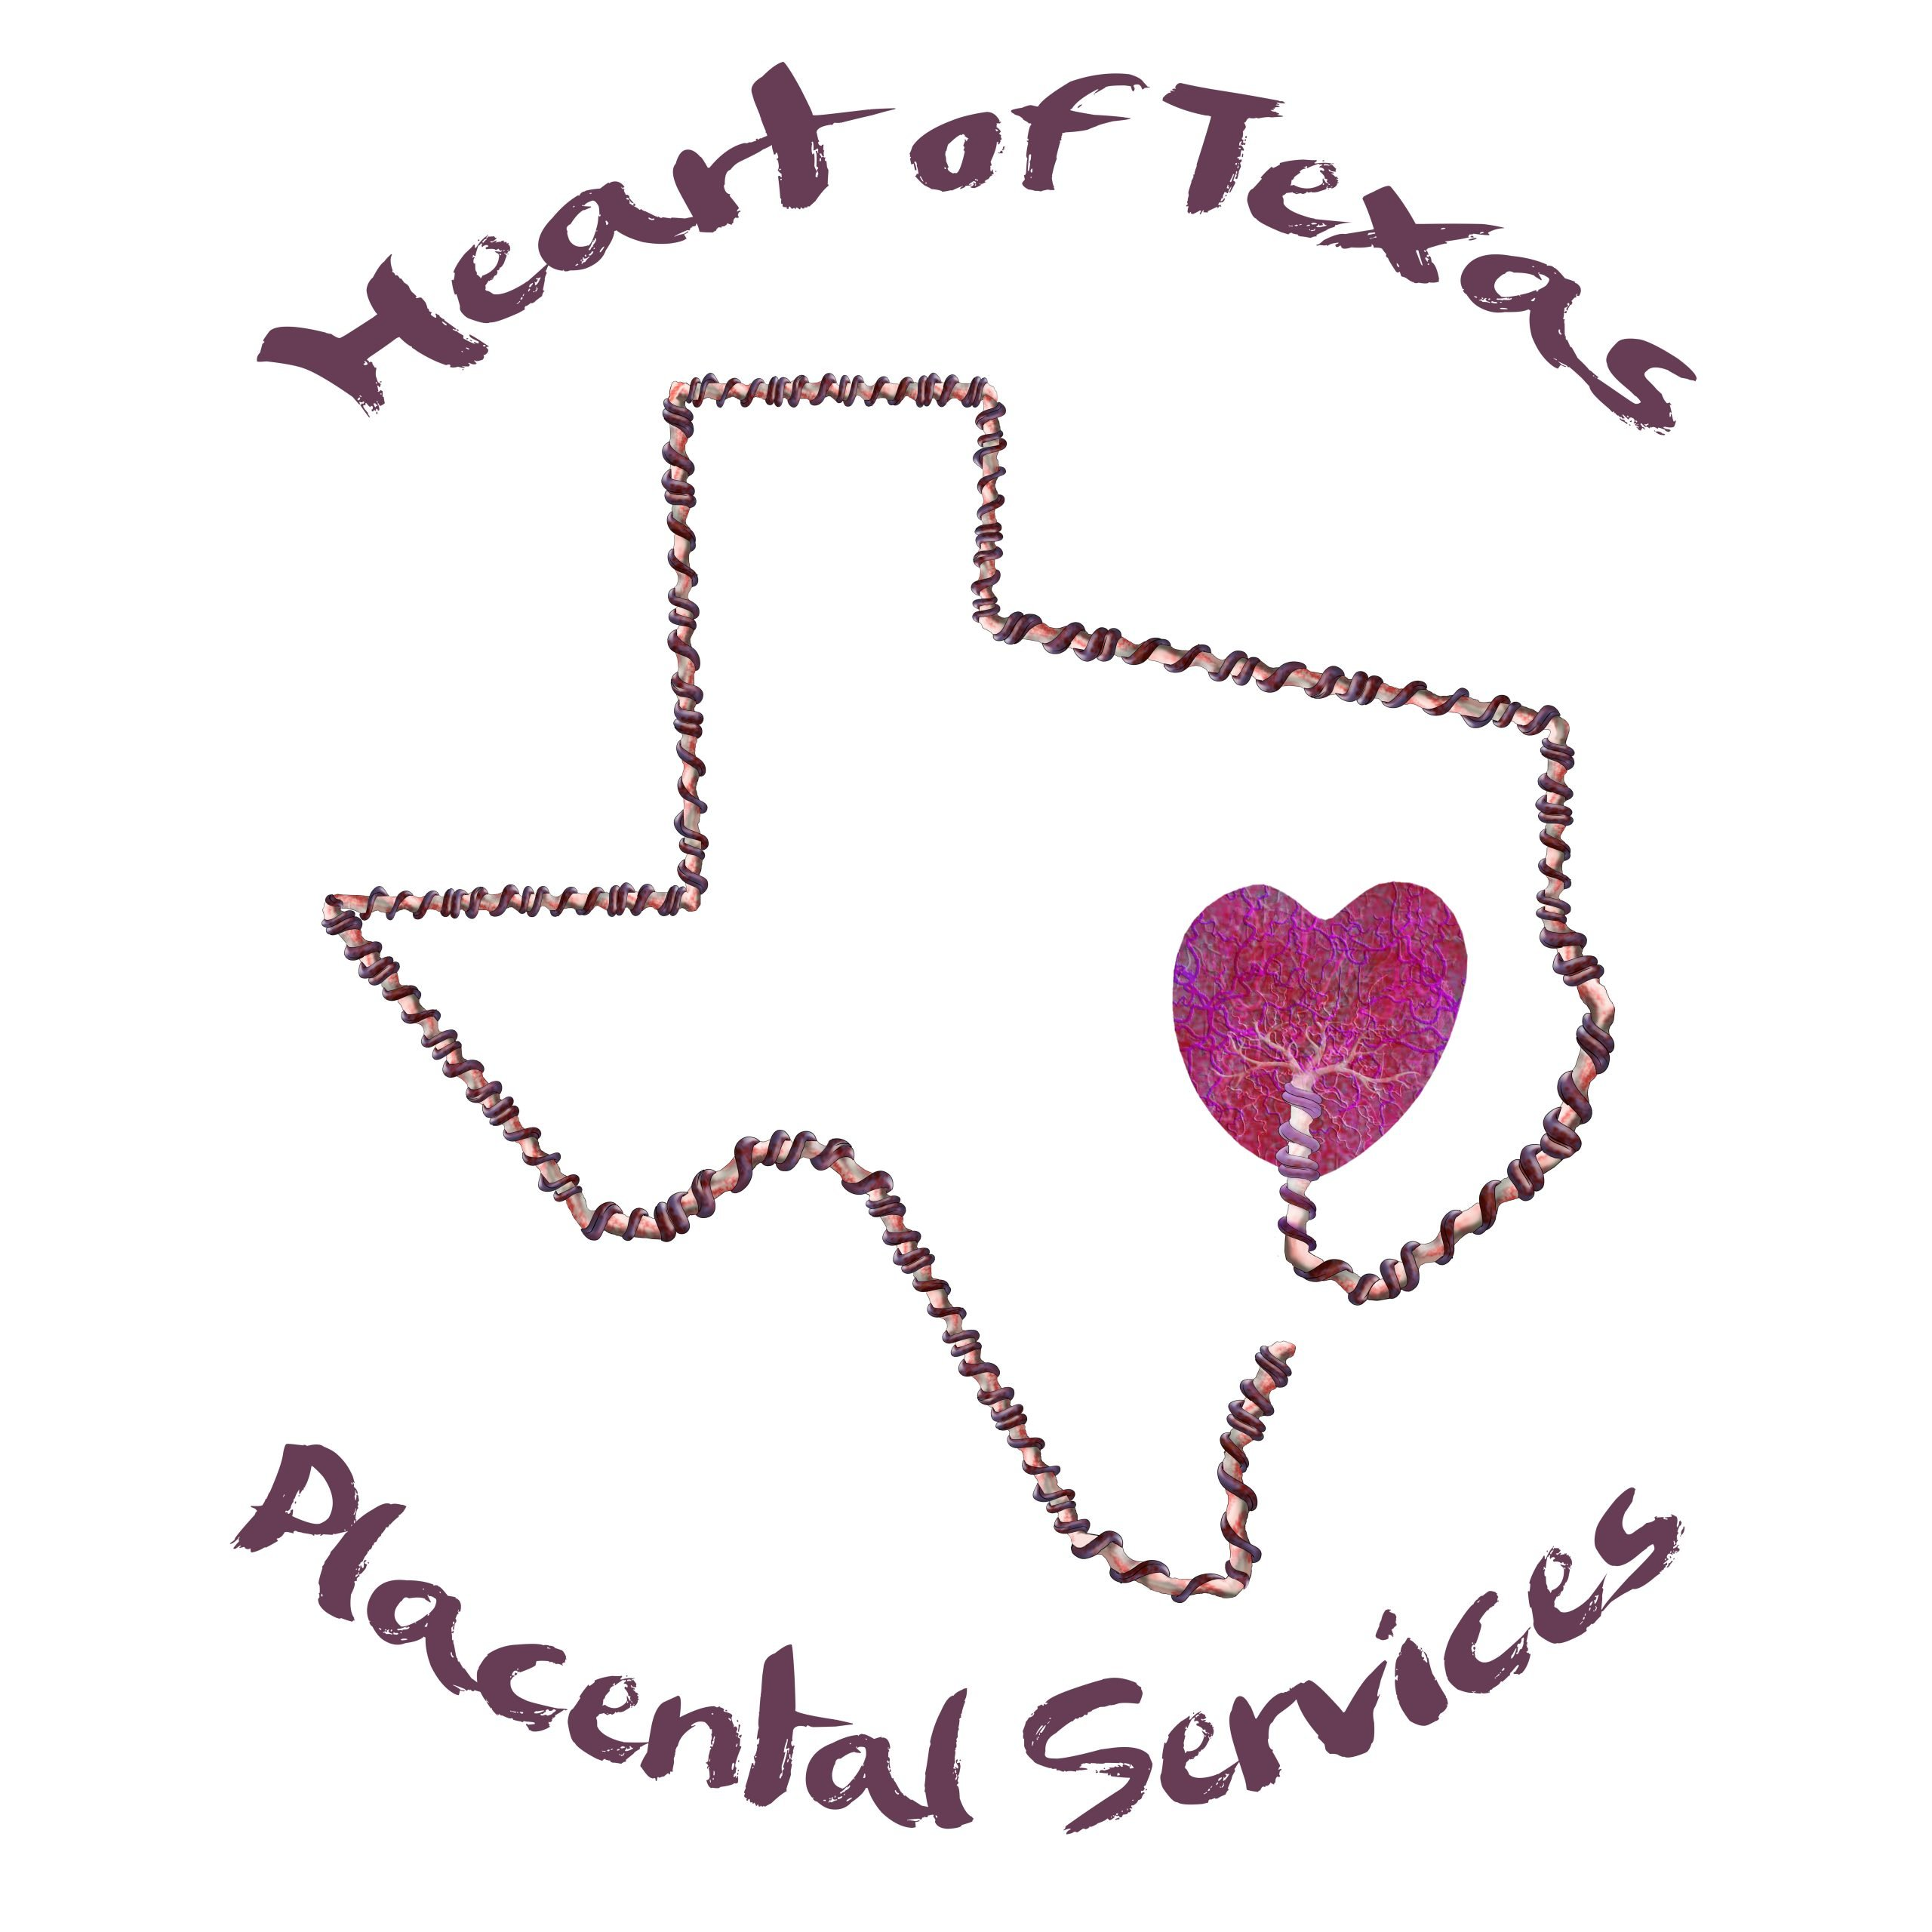 Heart of Texas Placental Services